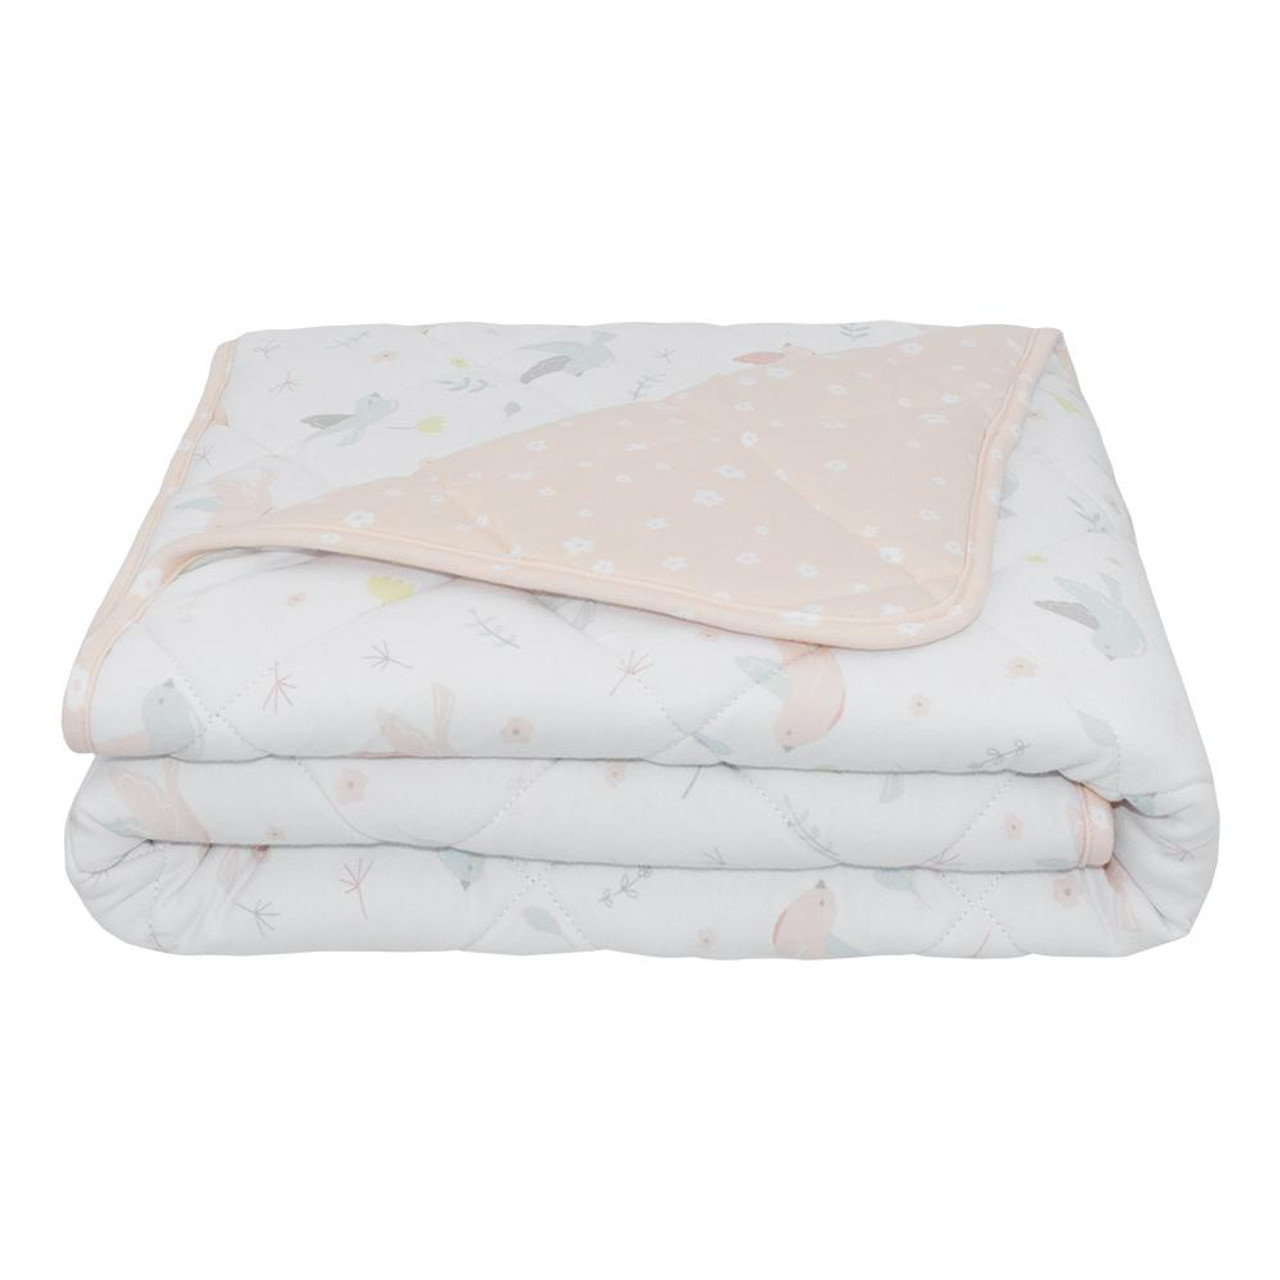 Living Textiles Jersey Cot Comforter at Baby Barn Discounts Generously sized, luxurious cot comforter from Living Textiles is made from super soft 100% cotton jersey.